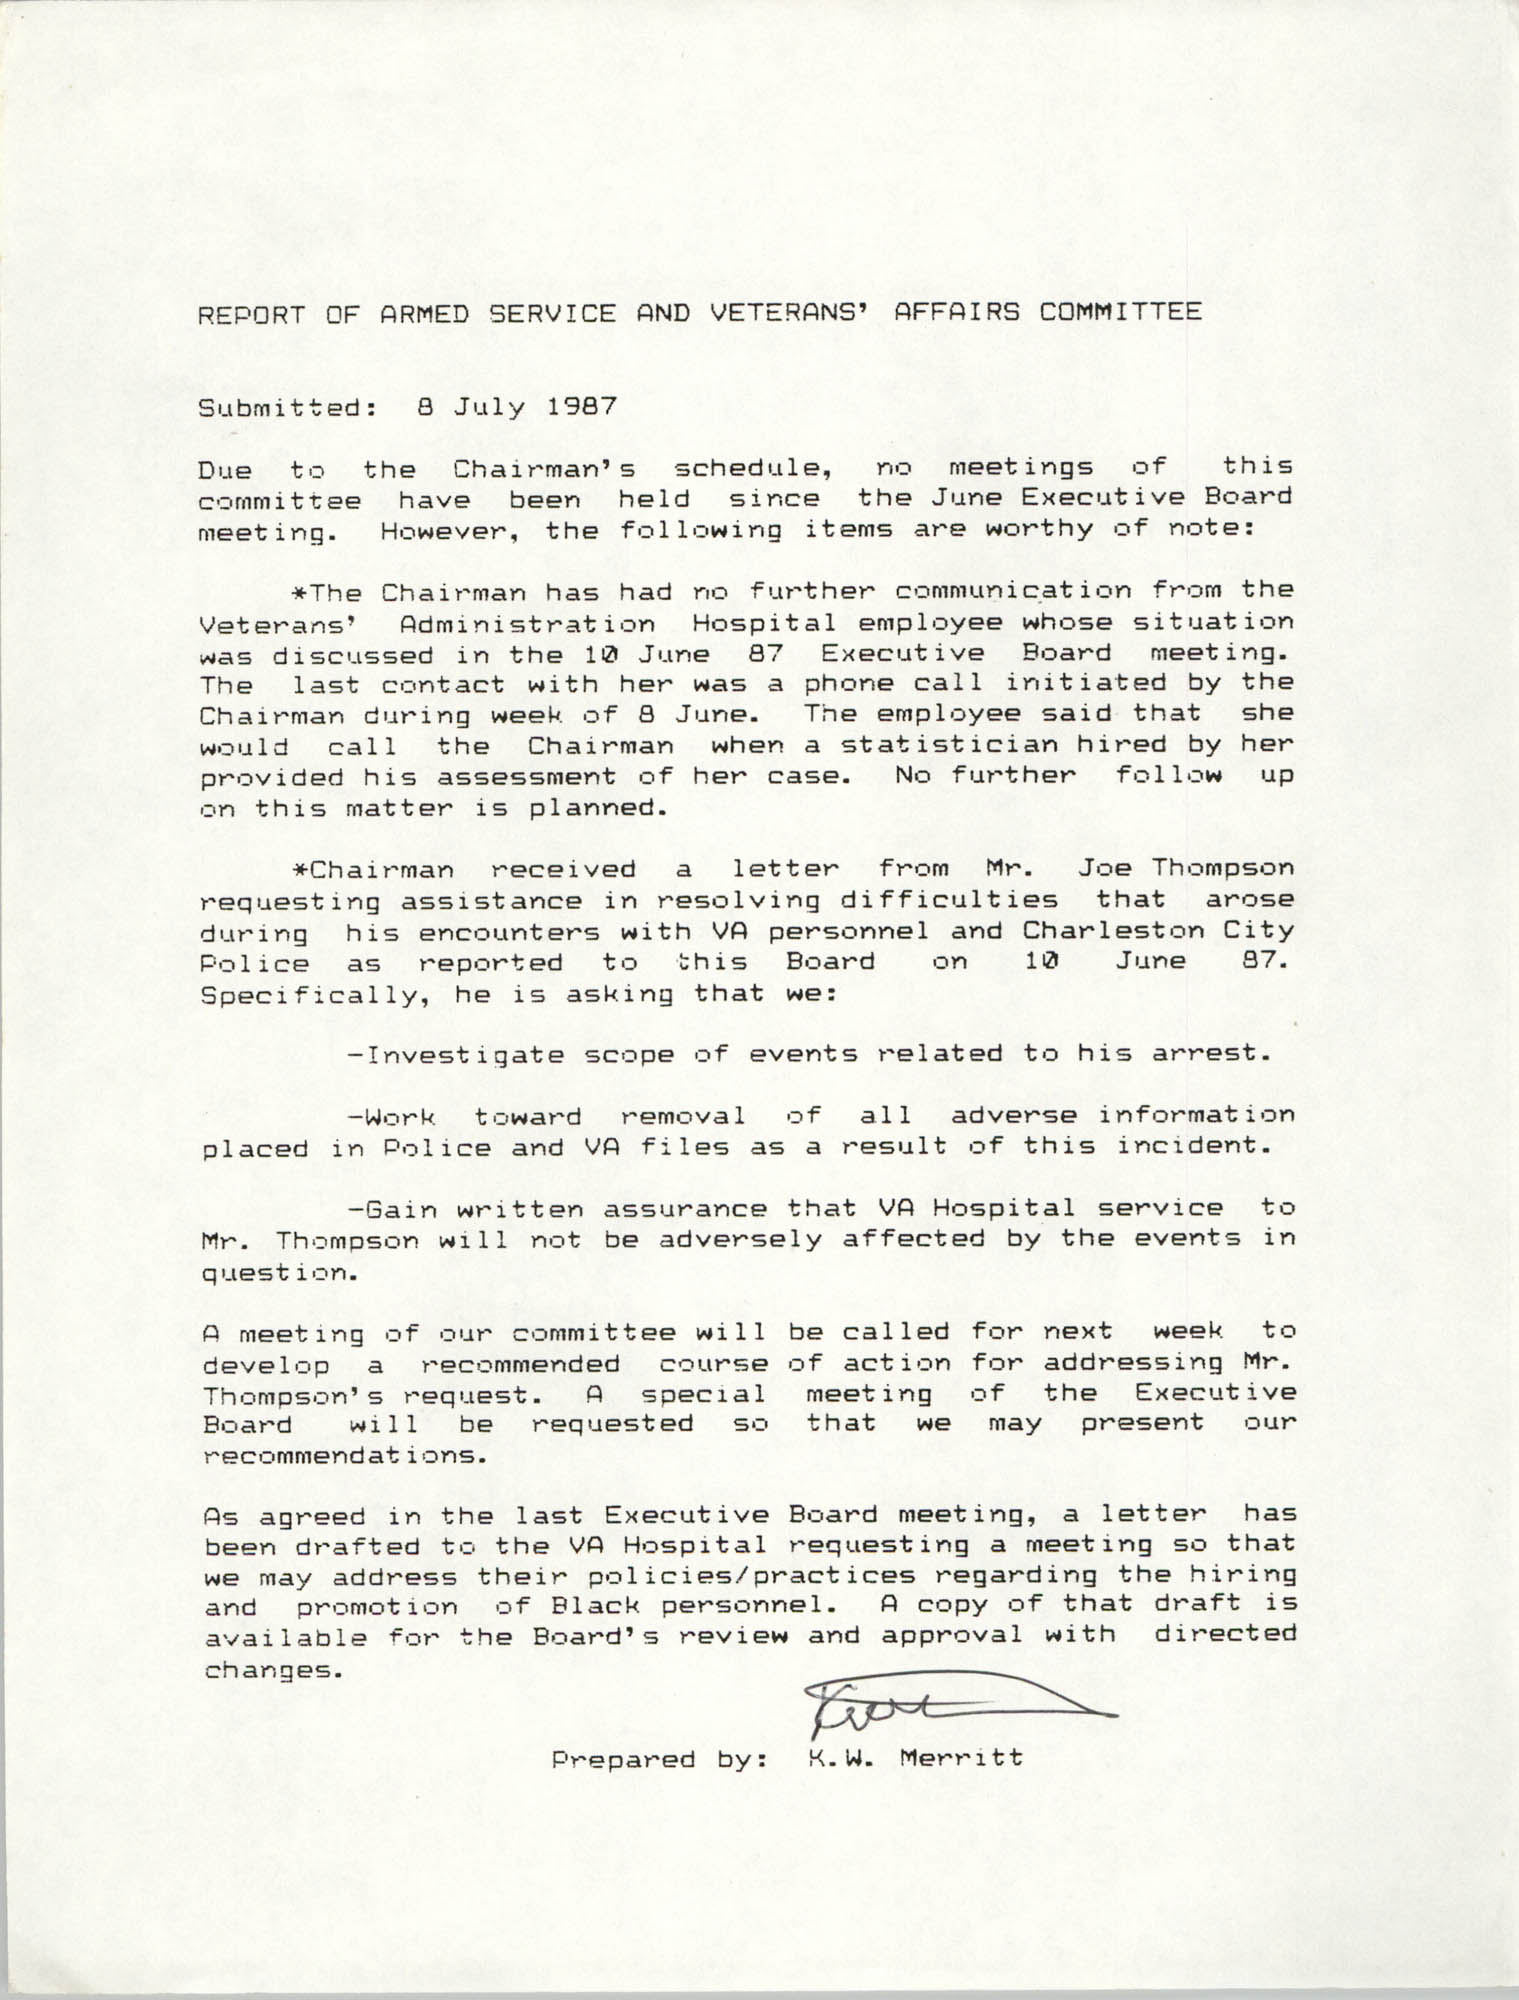 Report of Armed Service and Veterans' Affairs Committee, K.W. Merritt, July 8, 1987